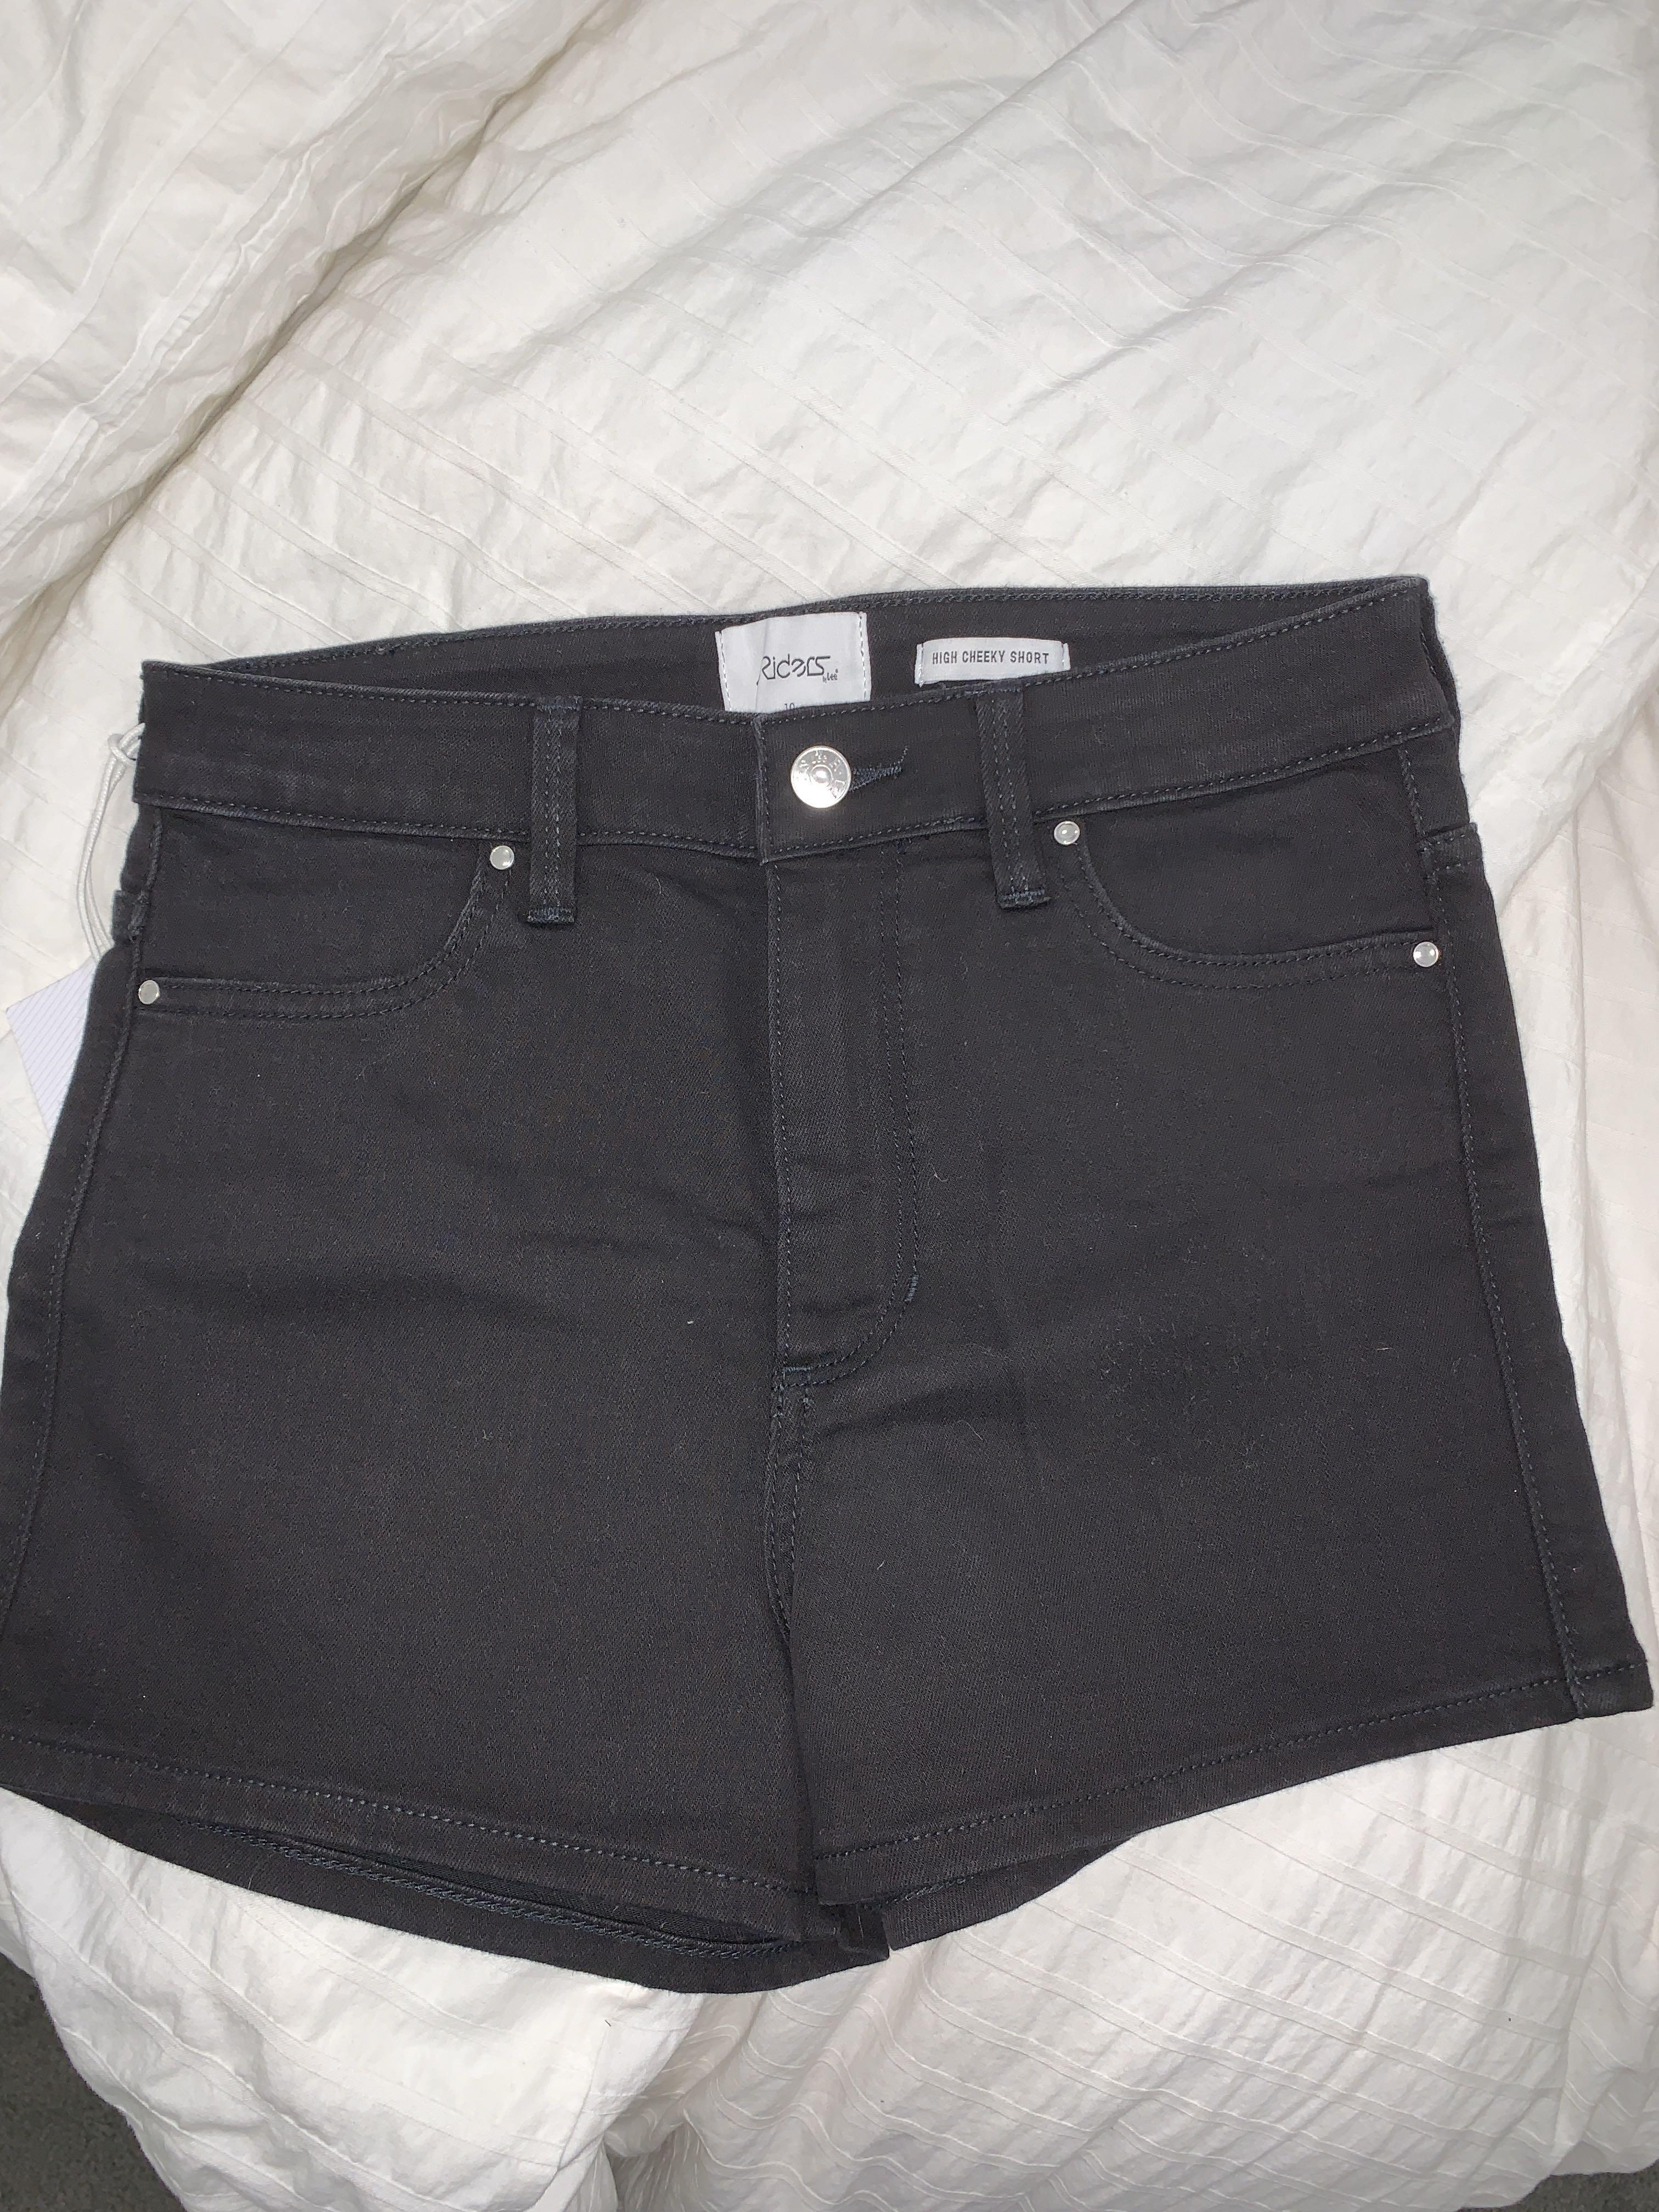 RIDERS BY LEE high cheeky short super fitted shorts